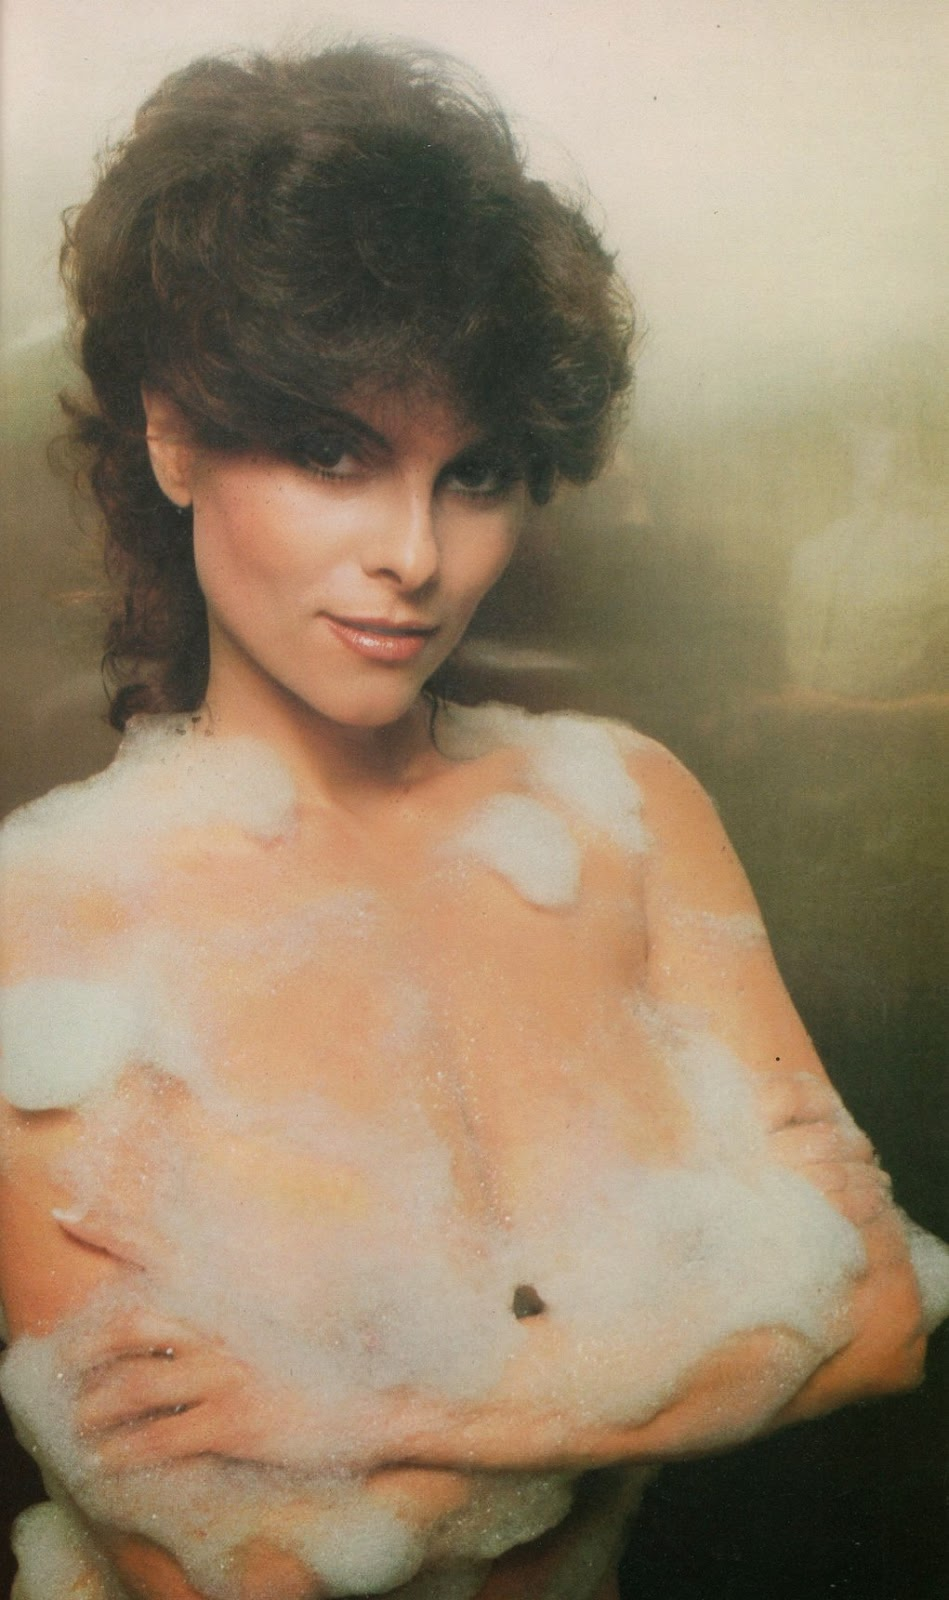 lifestyles of the nude and famous: adrienne barbeau